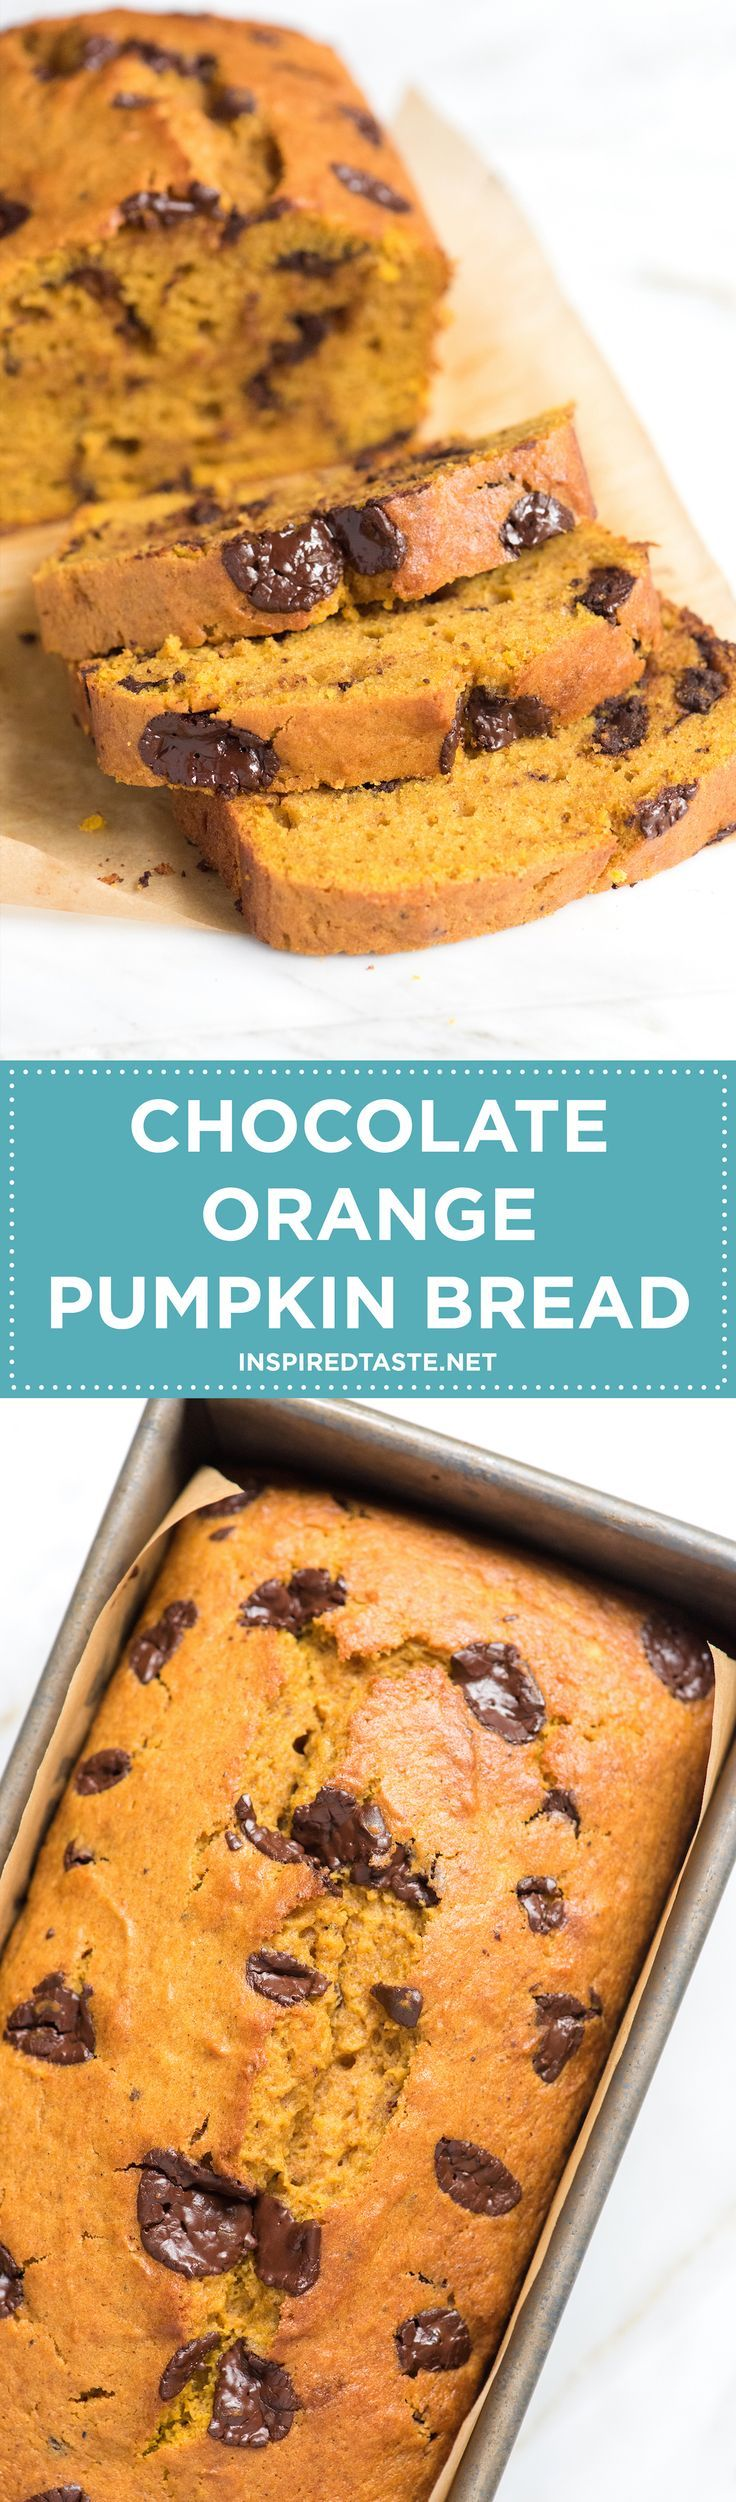 This easy pumpkin bread recipe scented with orange and filled with chopped chocolate is a winner. Not too sweet, extremely moist and perfect for fall! From inspiredtaste.net | @inspiredtaste